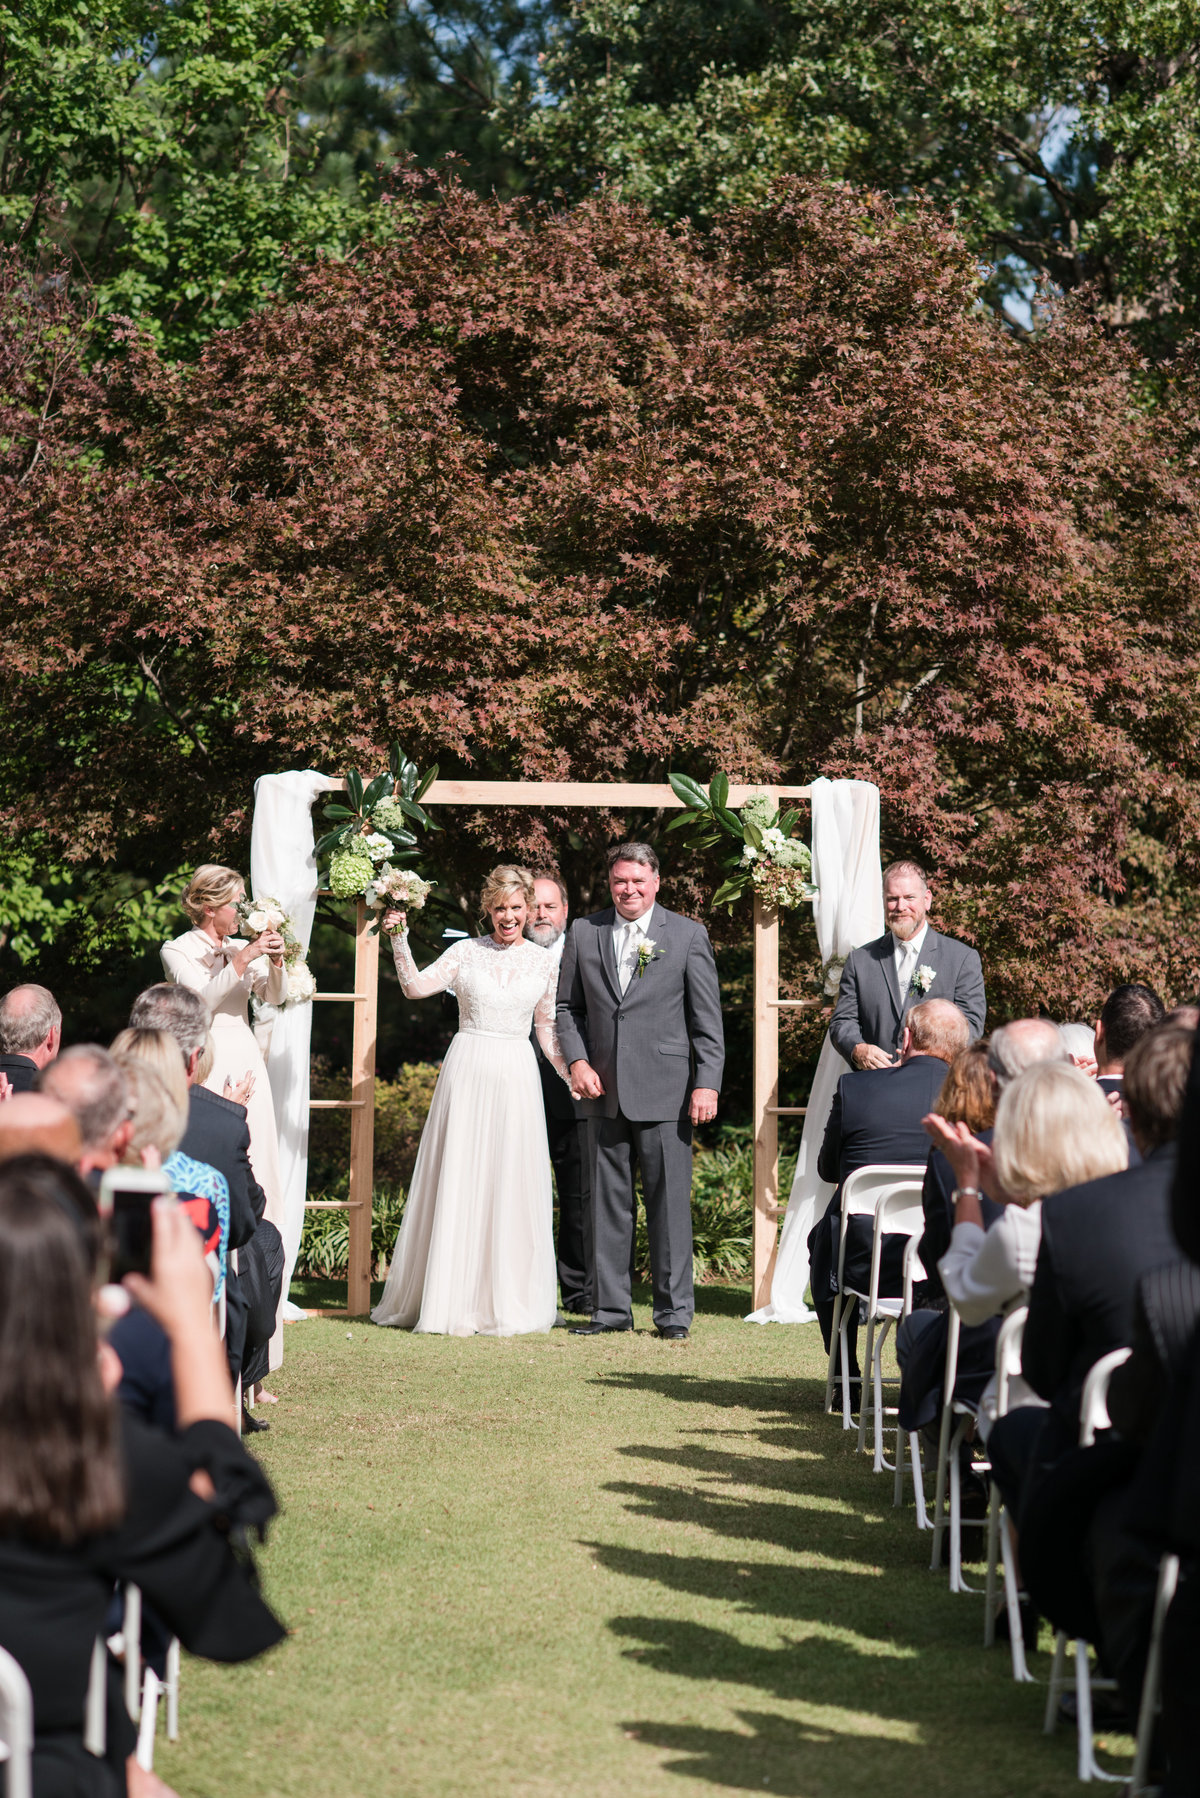 Fletcher_Park_Raleigh_NC_Wedding0031